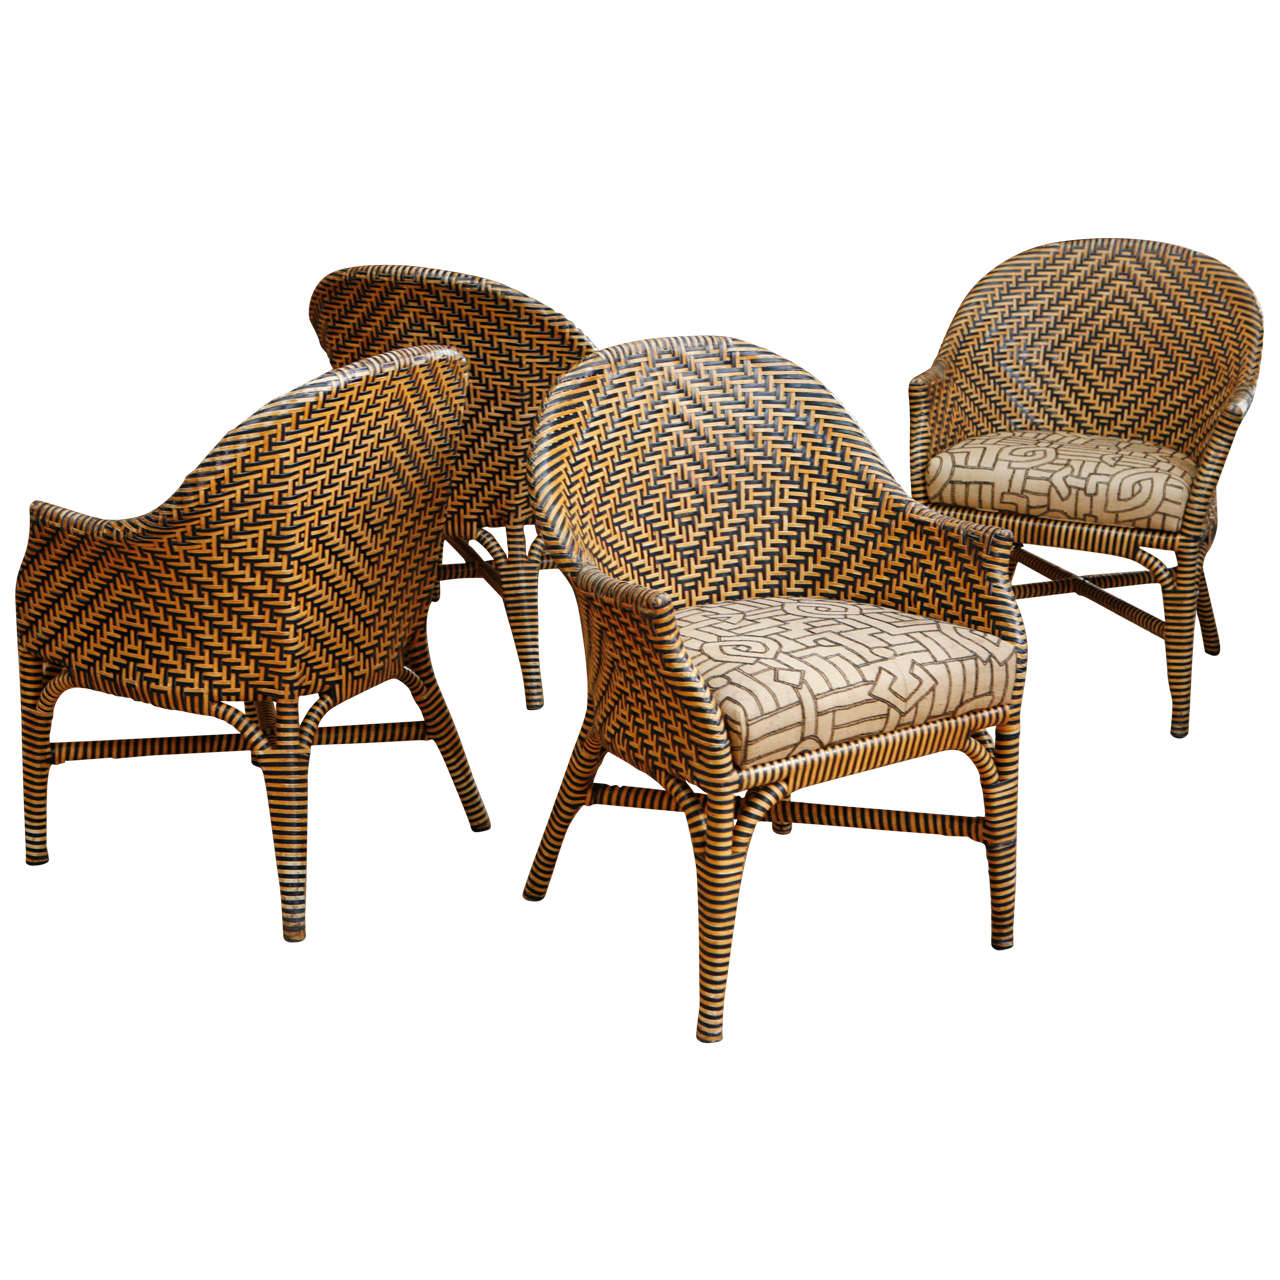 Woven Leather Chair Woven Leather Chairs With Kuba Cloth Seats At 1stdibs